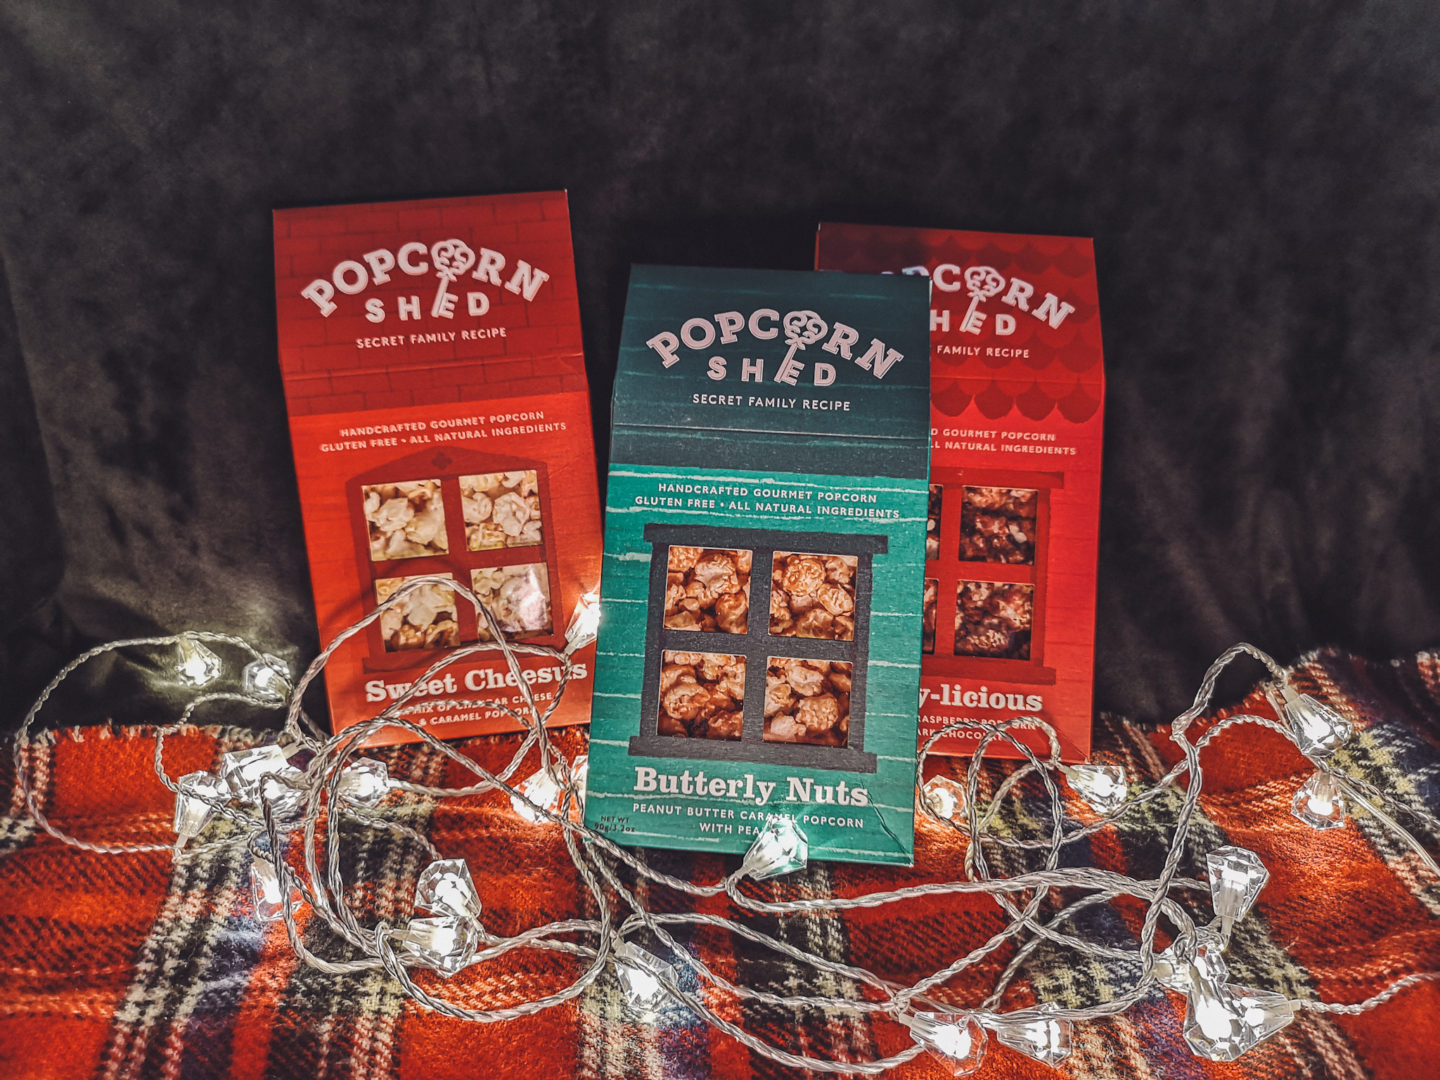 The Popcorn Shed Review - Gluten Free Gift Guide